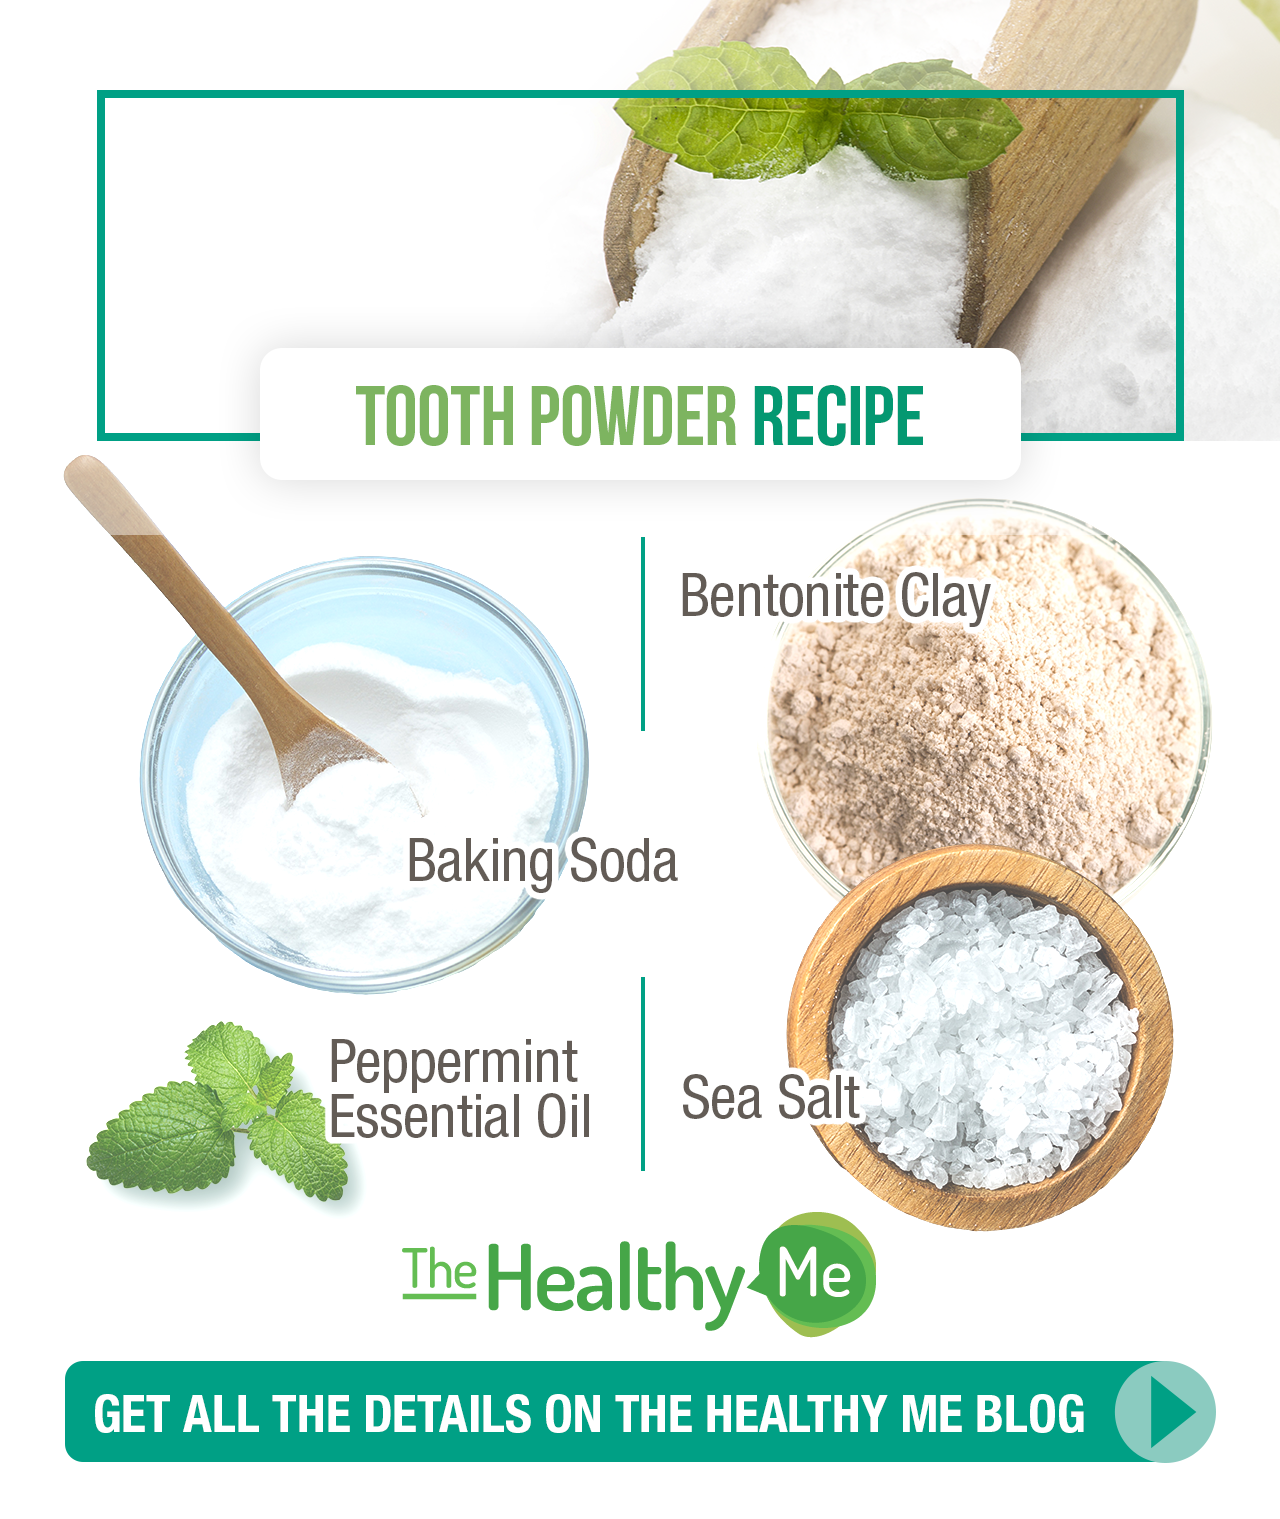 HowTo-MakeToothpowder-Infographic1